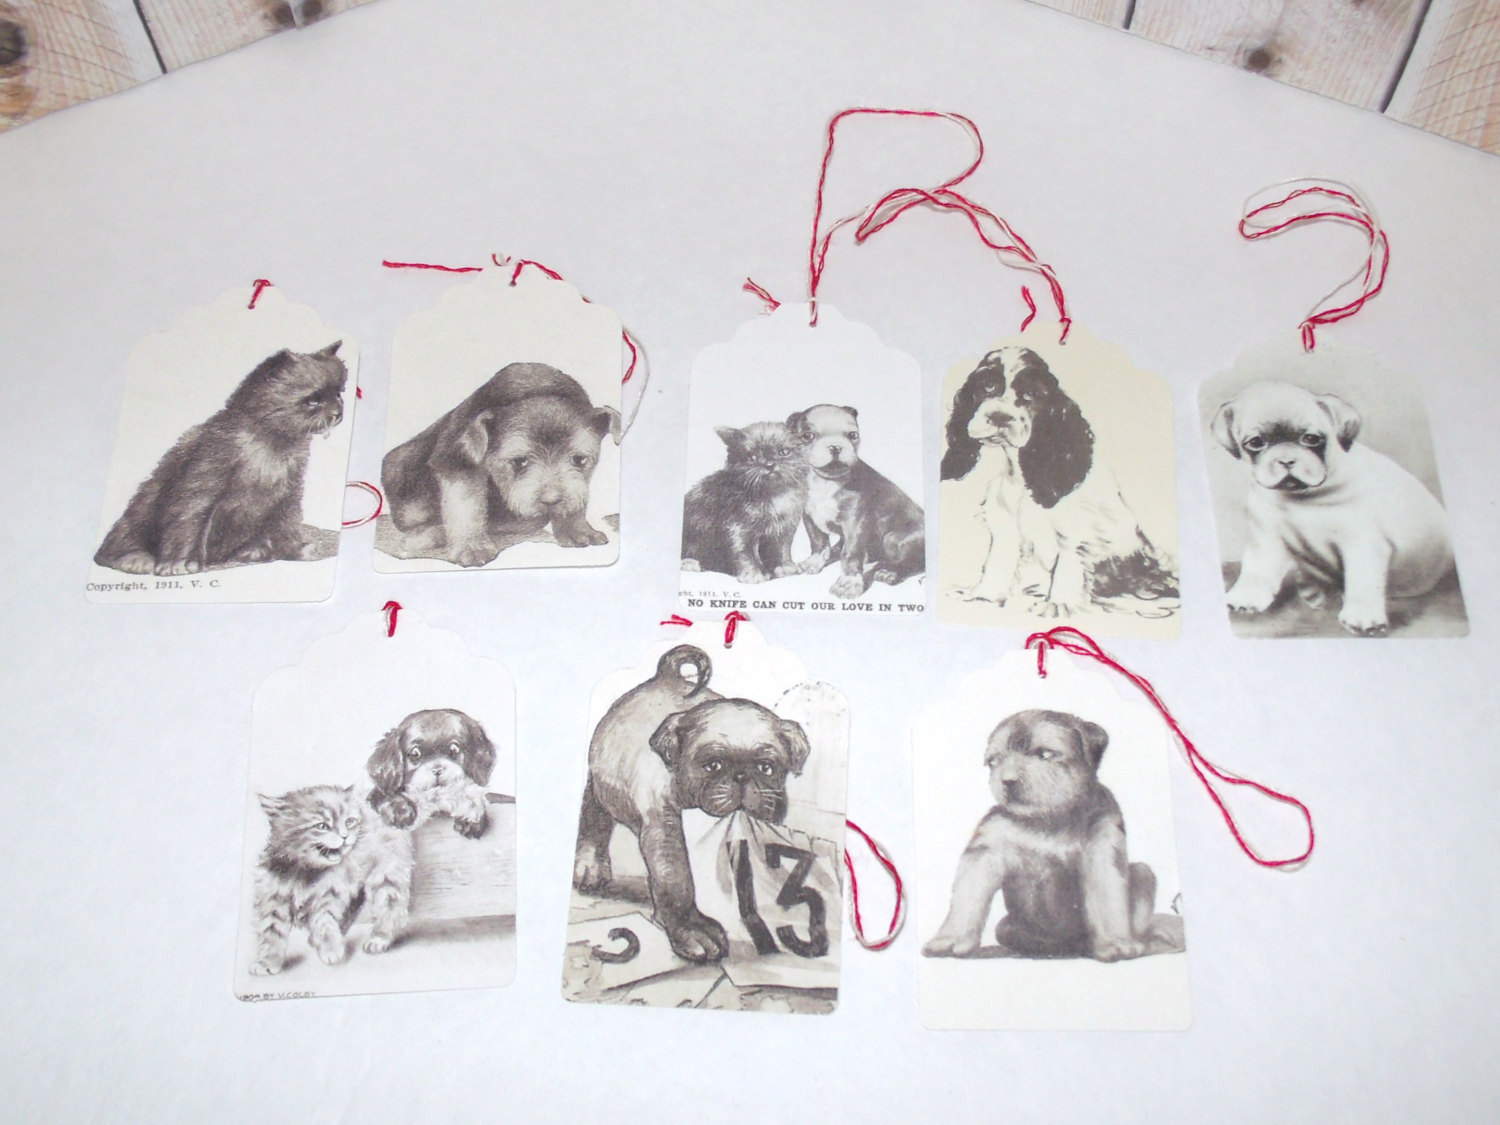 Cats, Kittens , Puppies and Dogs Decorate These Cute Gift Tags Handmade